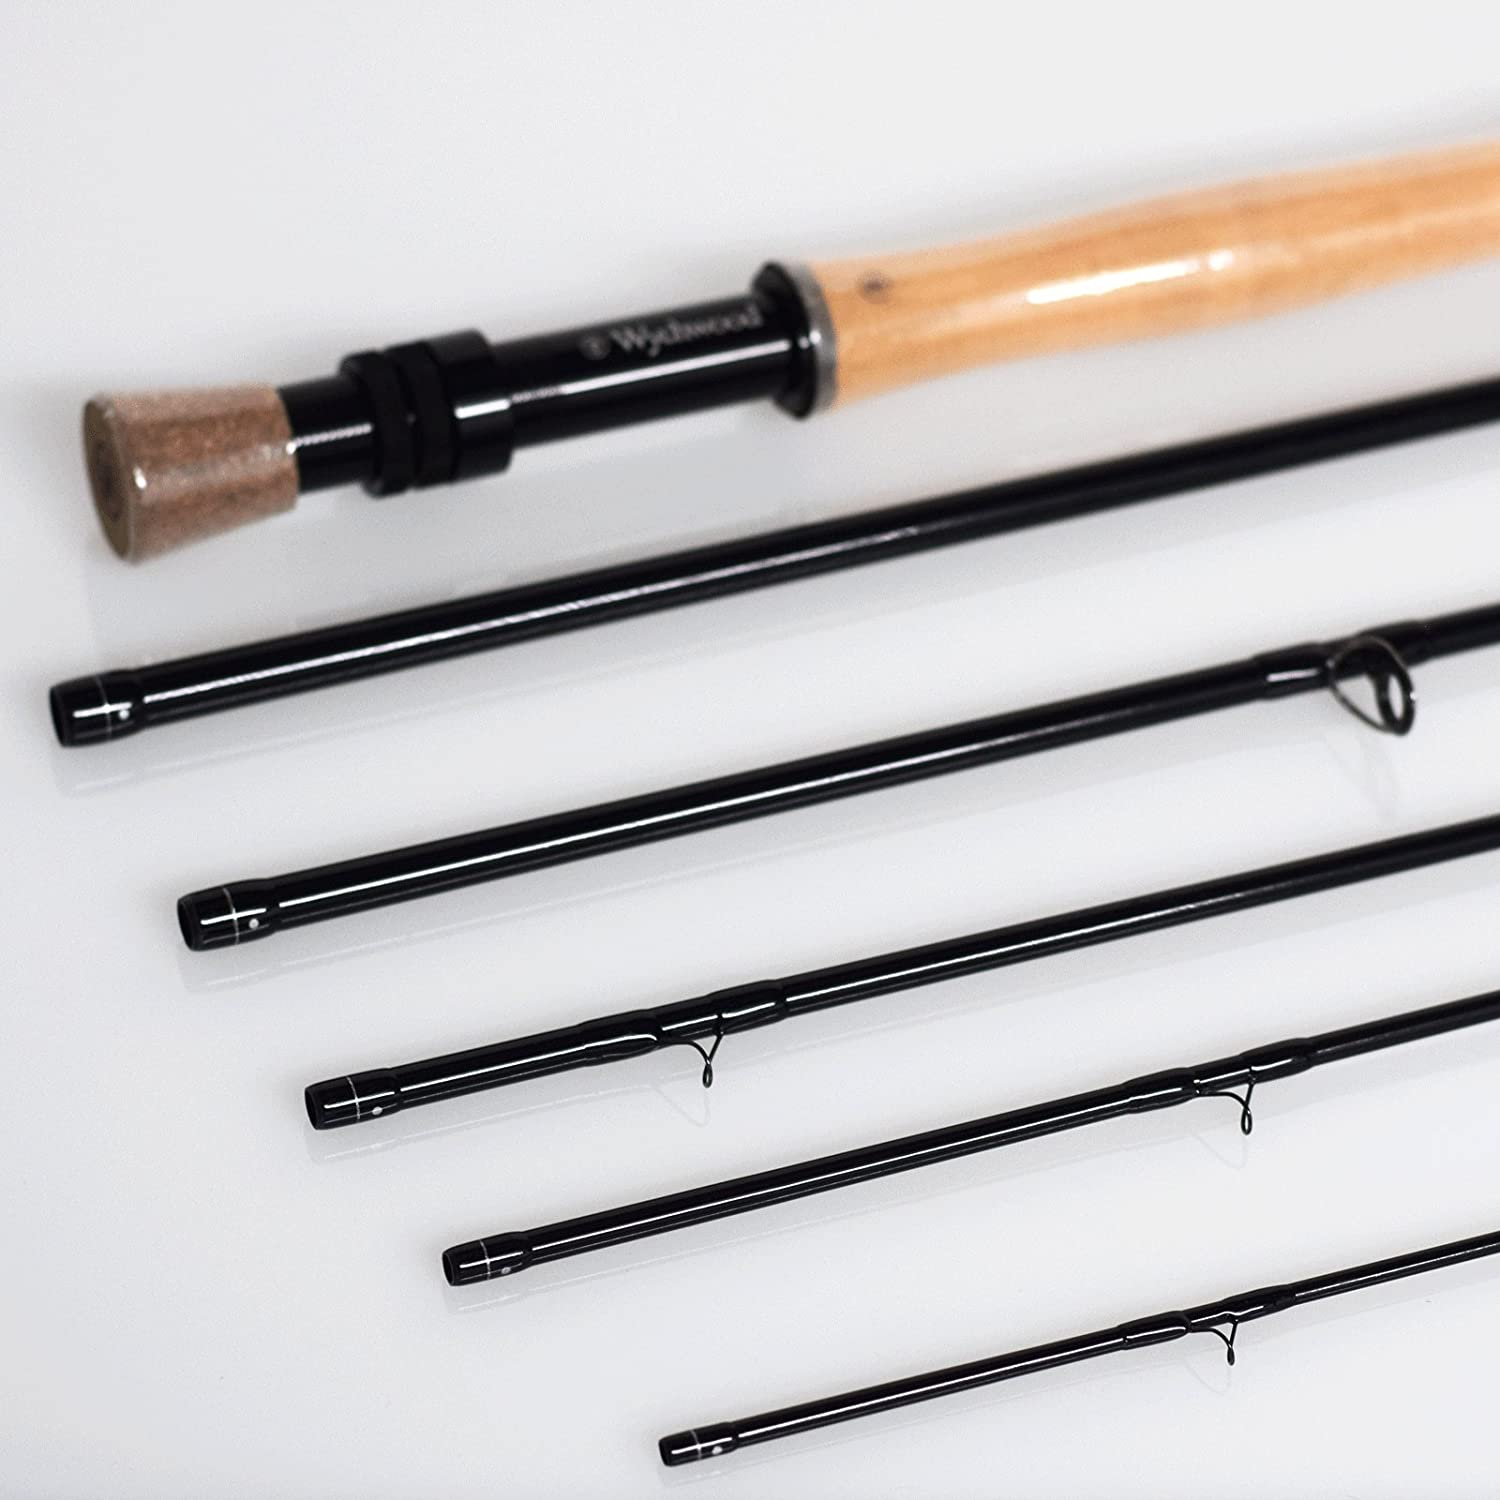 Wychwood Quest V2 Six Piece 9 ft 6 inch 7-Wt Fly Fishing Rod with Case